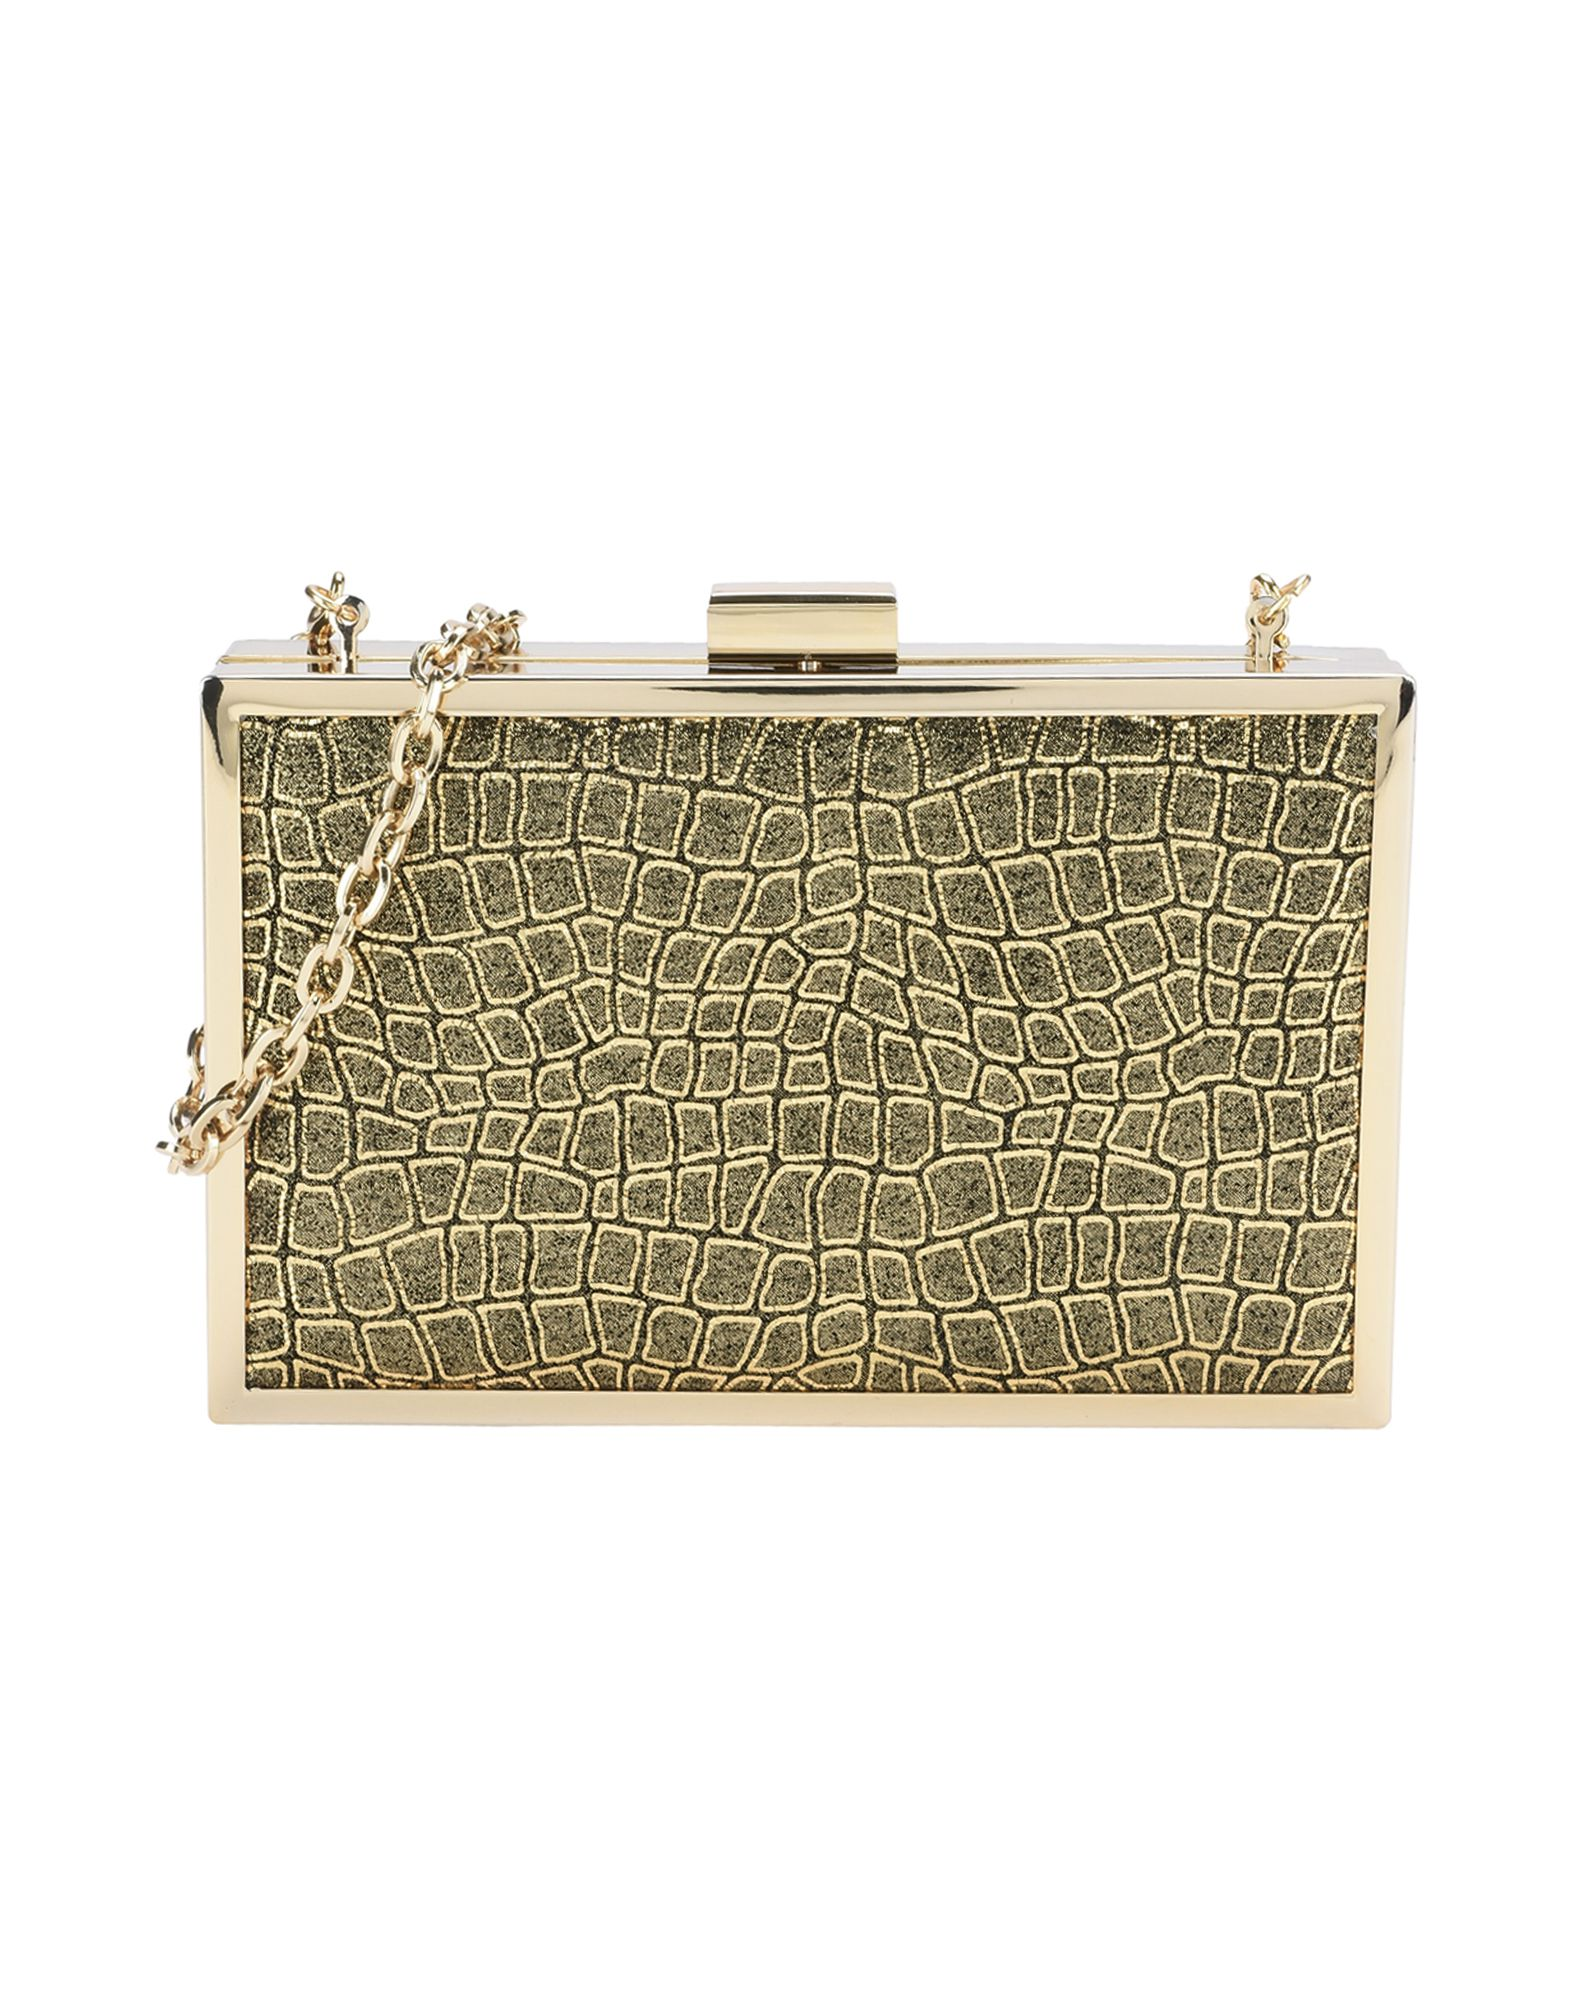 INGE CHRISTOPHER Handbag in Gold